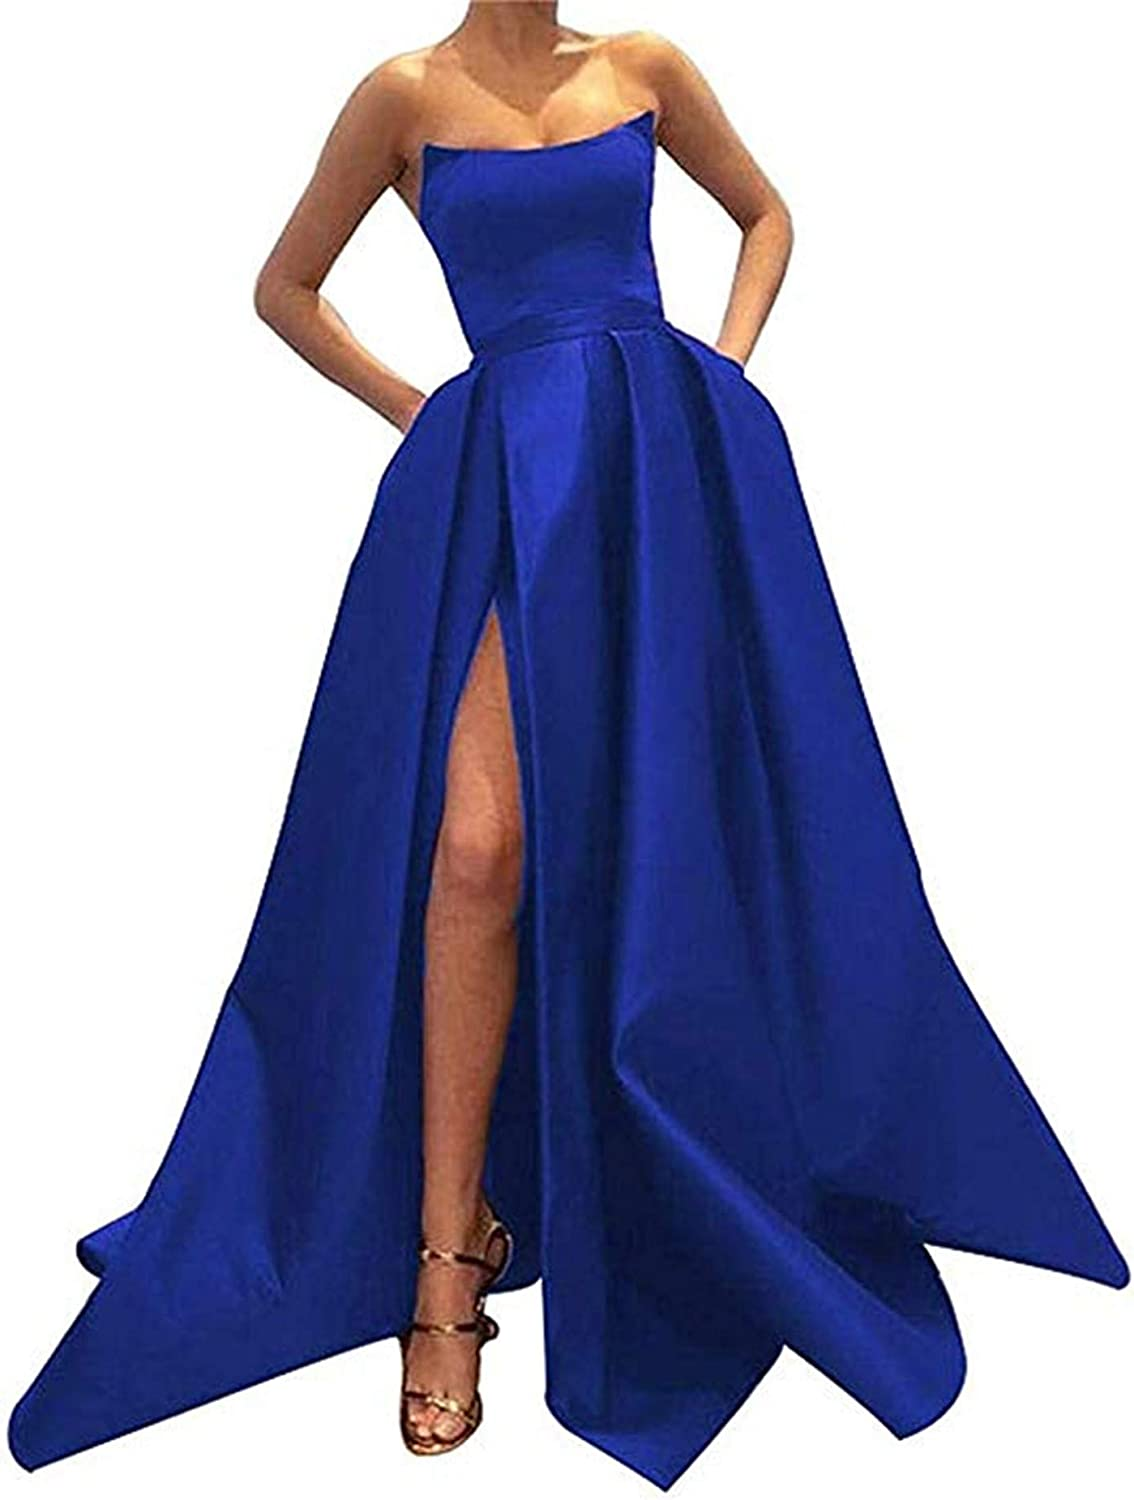 QiJunGe Women's Strapless Satin Prom Dress Split A Line Formal Party Gown